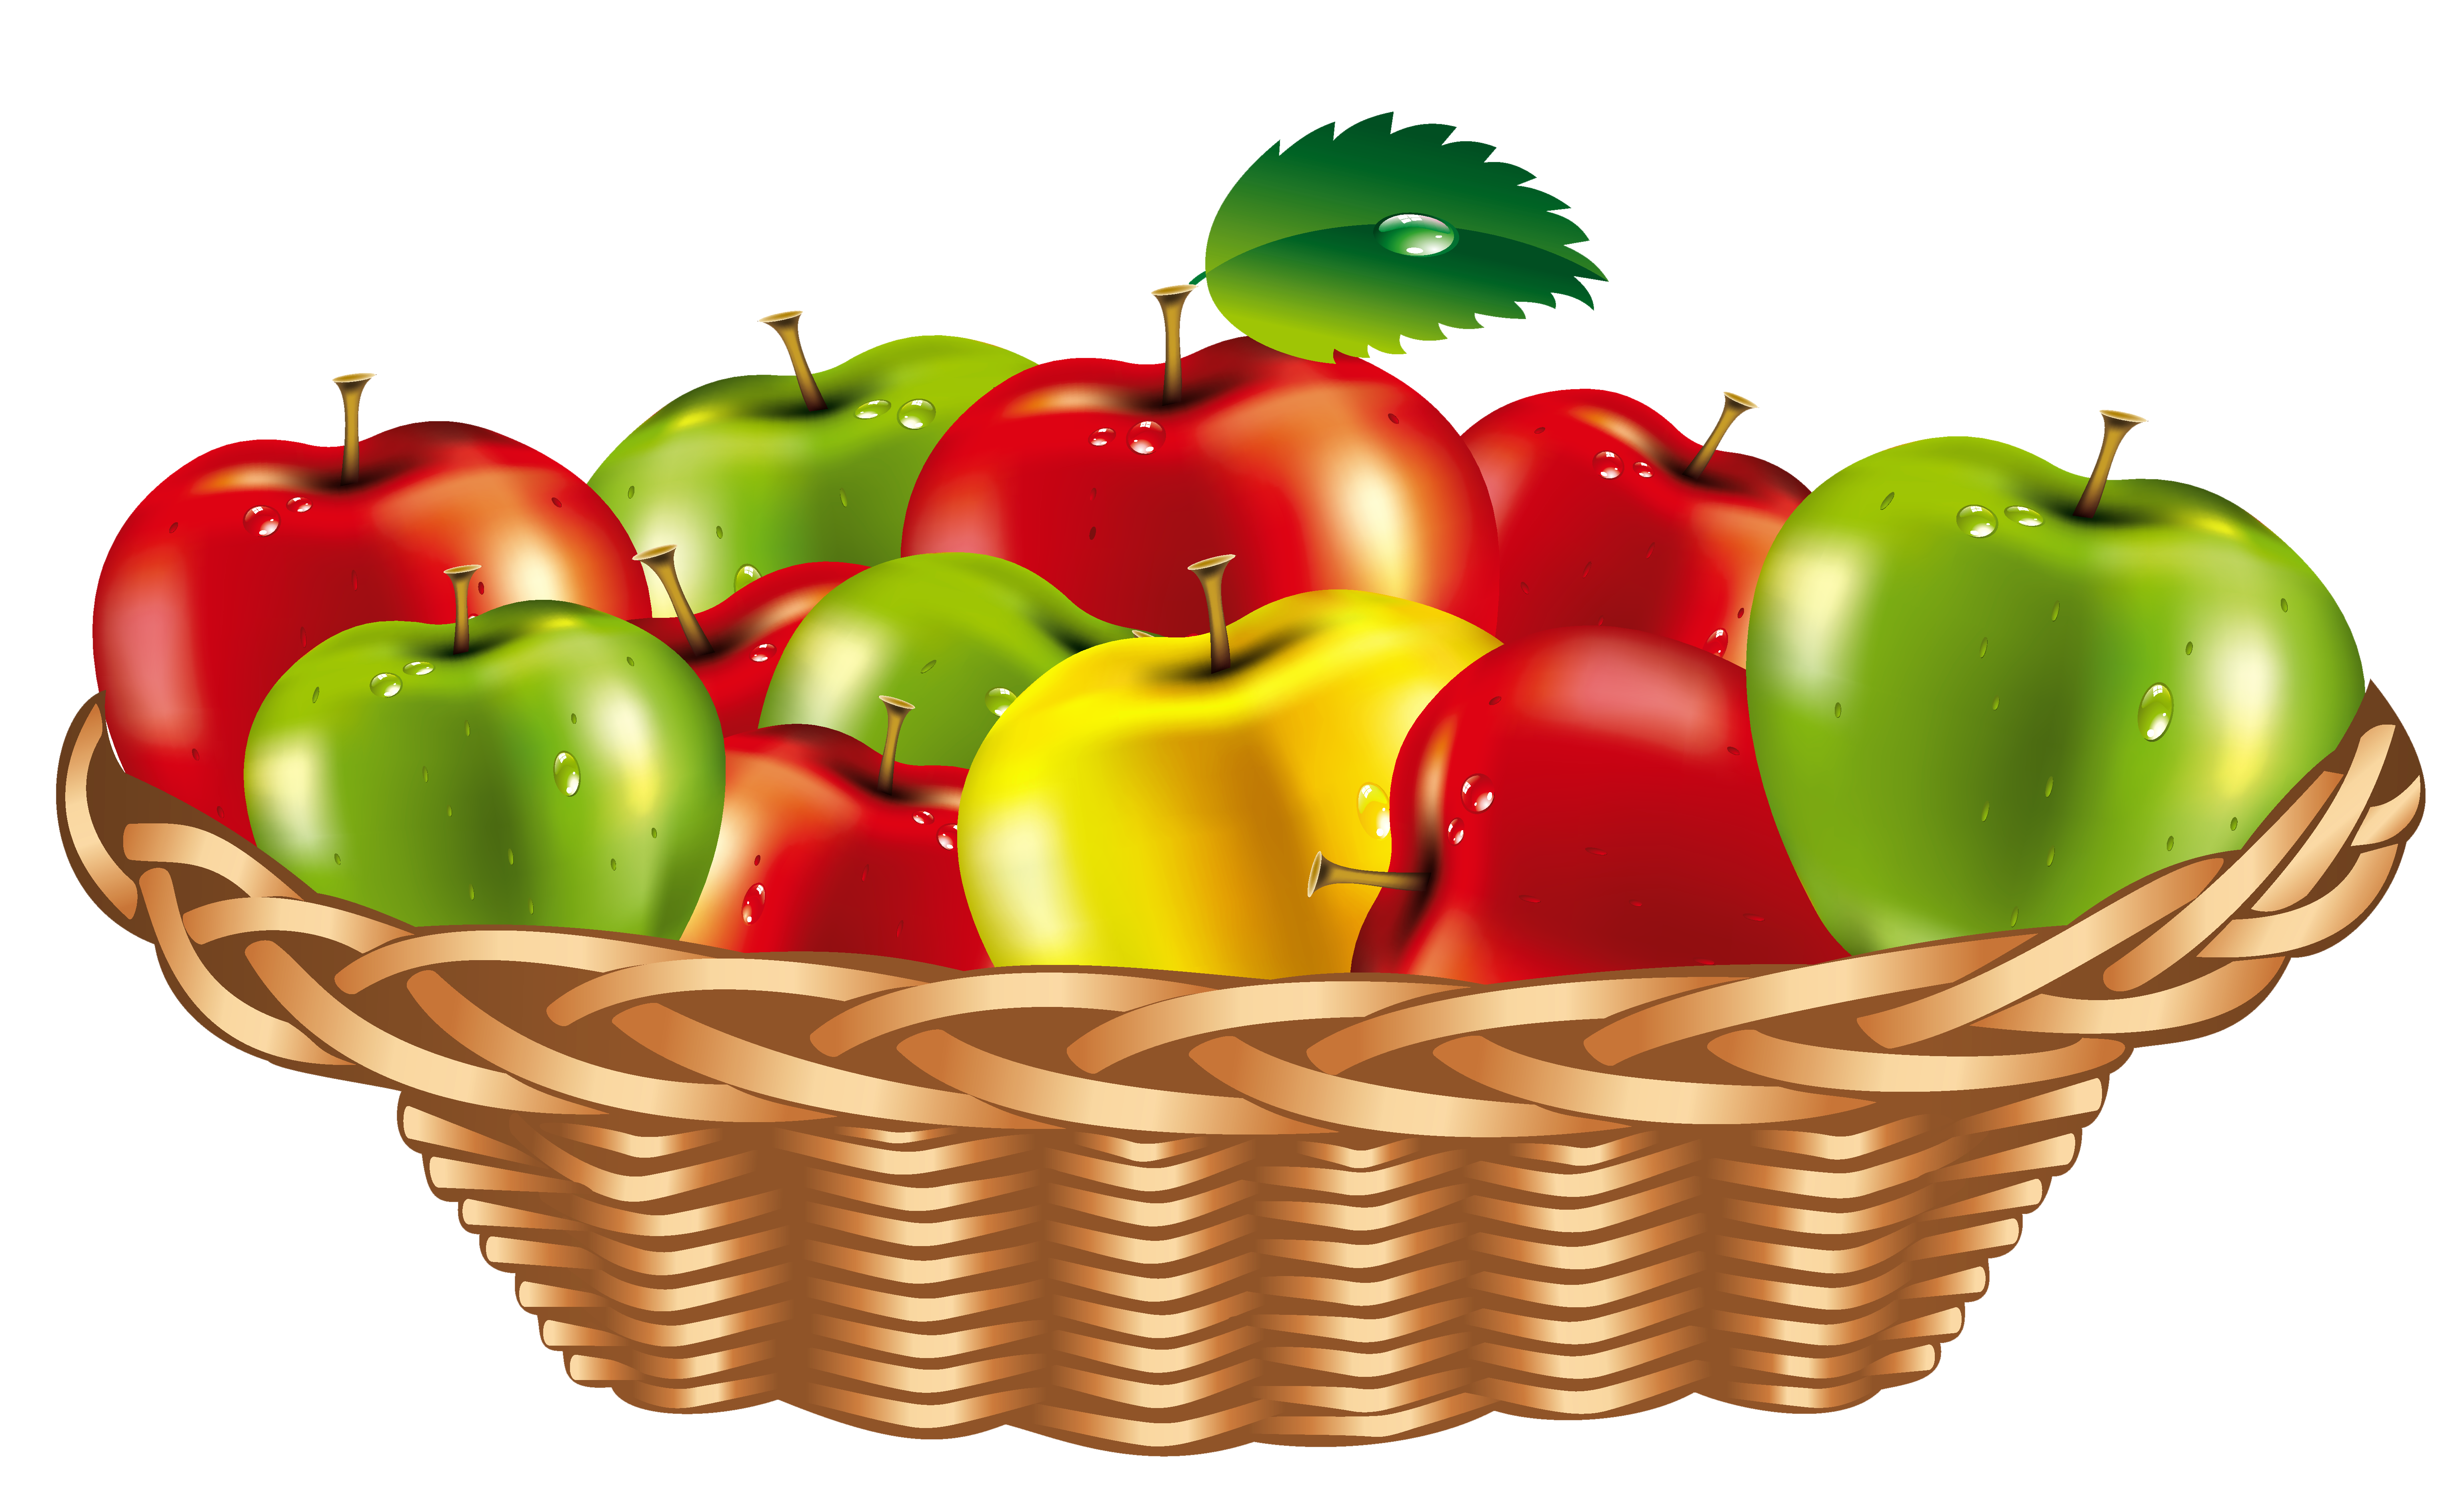 Fruit basket gallery yopriceville. Fruits clipart png clip transparent stock